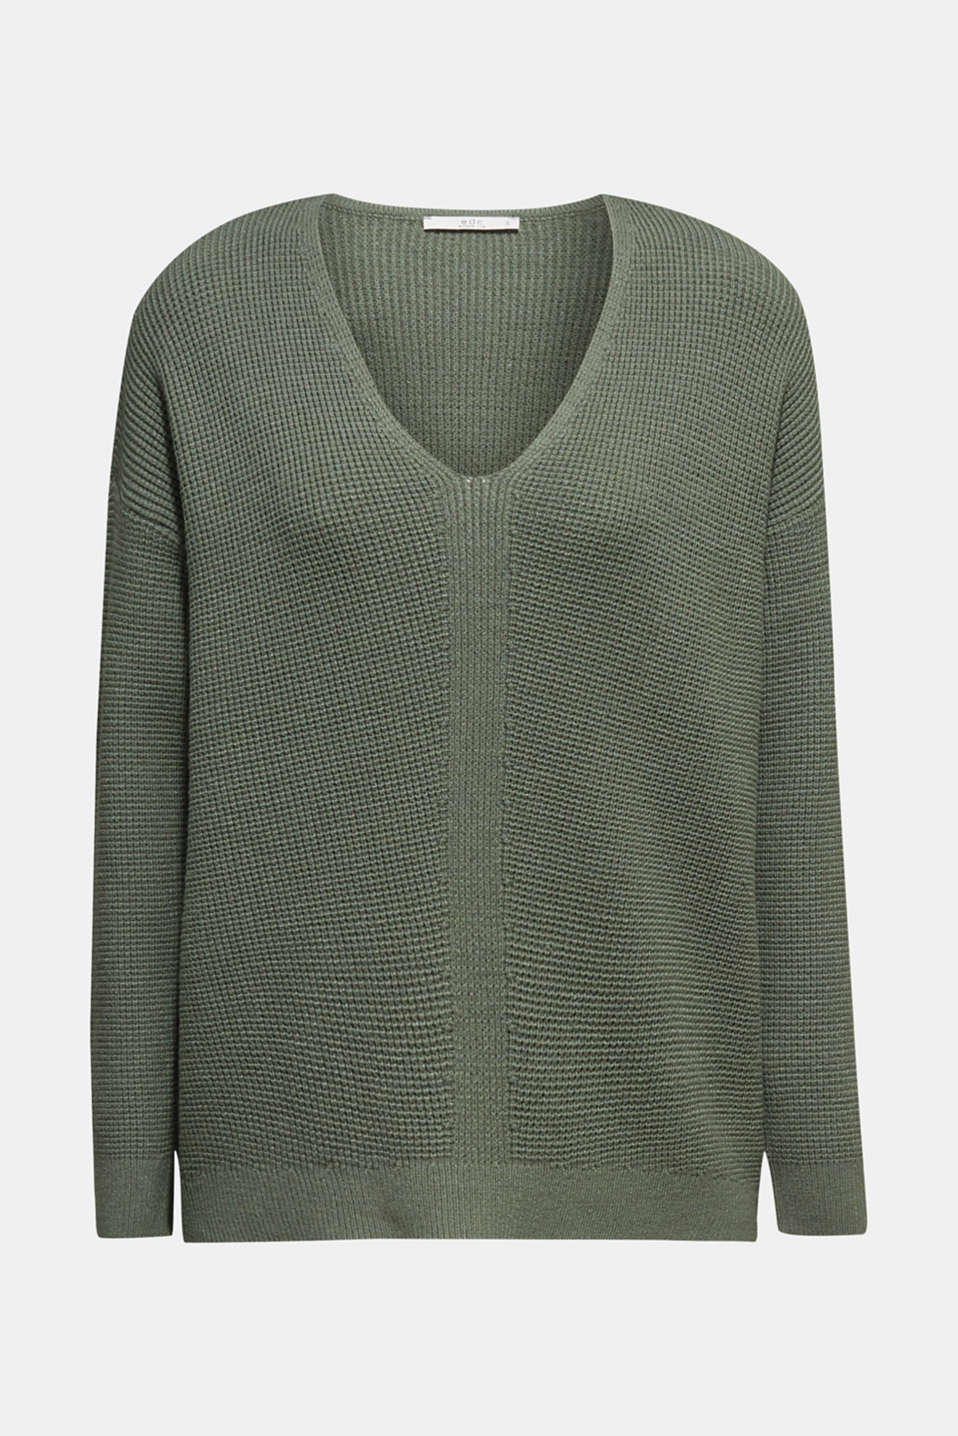 Jumper with a rice grain texture, KHAKI GREEN, detail image number 6